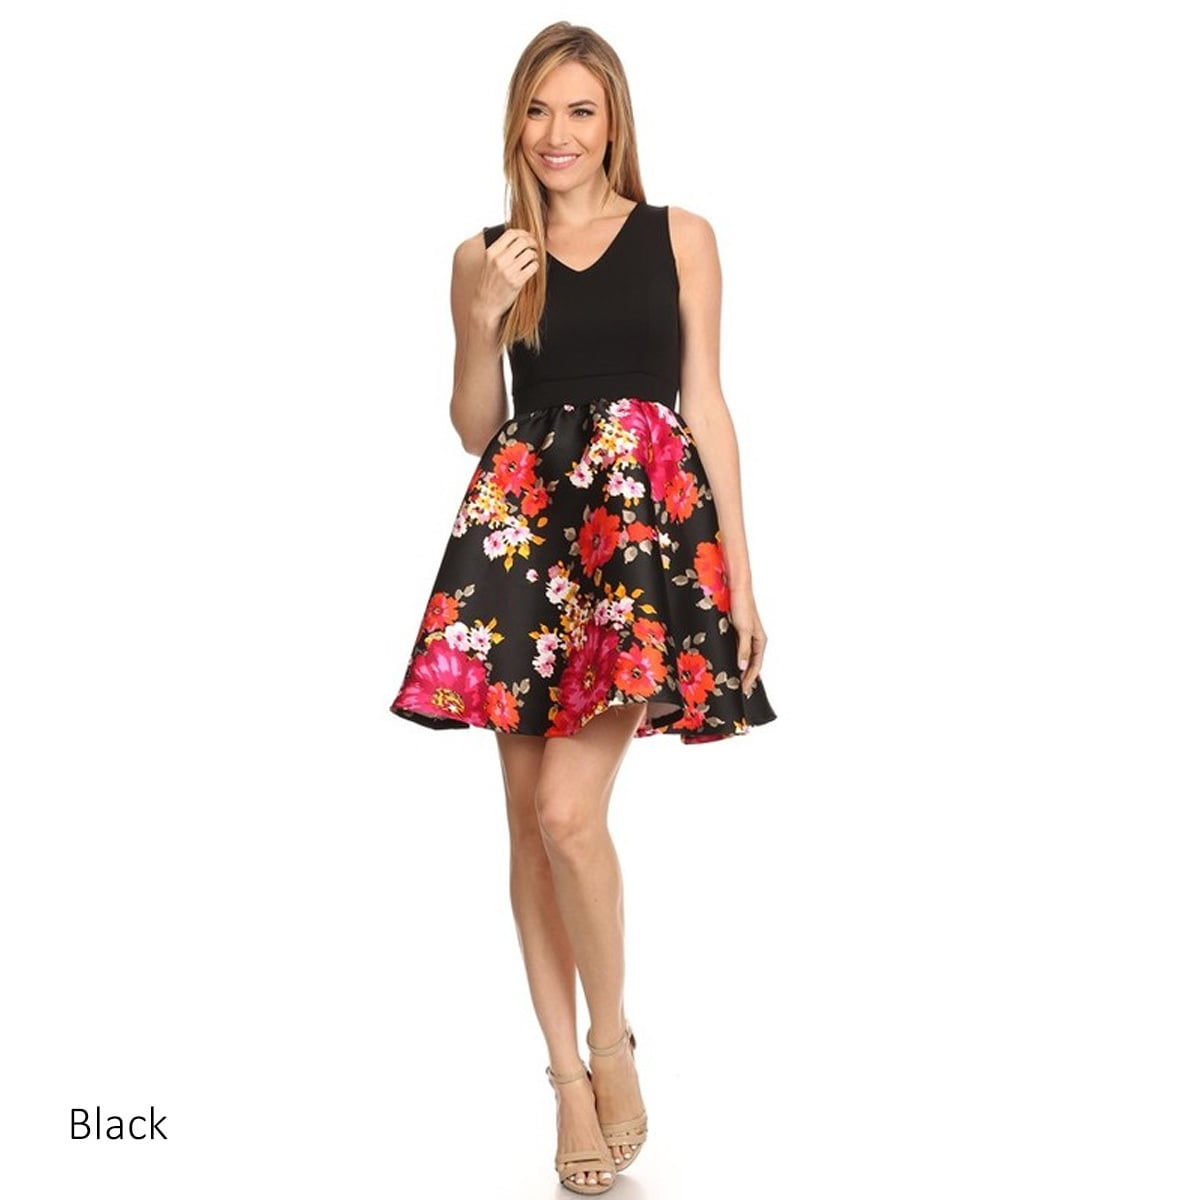 ffbd840e77e Shop MOA Collection Women s Floral Fit-and-flare Dress - On Sale - Free  Shipping On Orders Over  45 - Overstock - 13297865